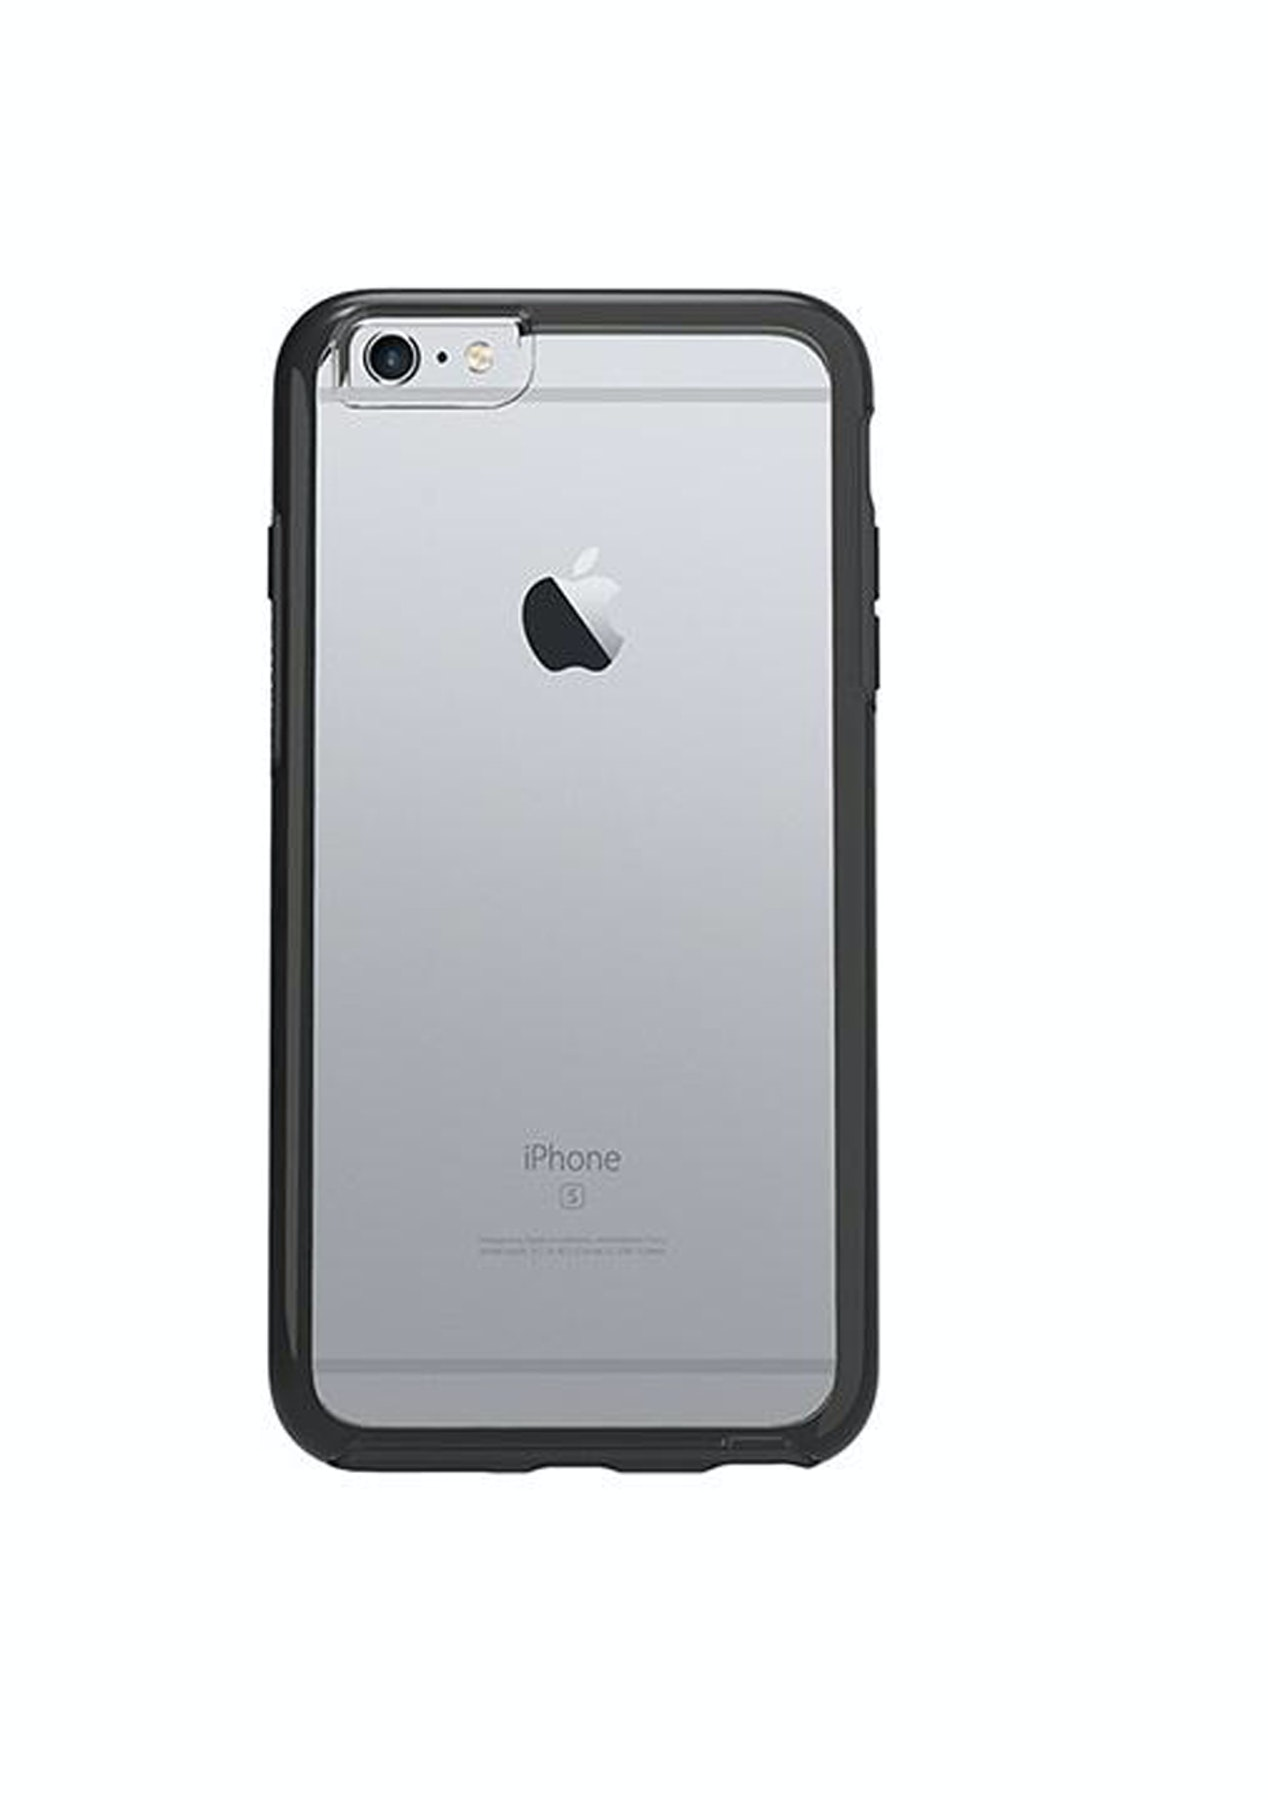 OtterBox iPhone 6 6s Plus Symmetry Clear Case - Black Crystal - Accessories  for Apple   Samsung from  7.95 - Onceit 68335ac5f5